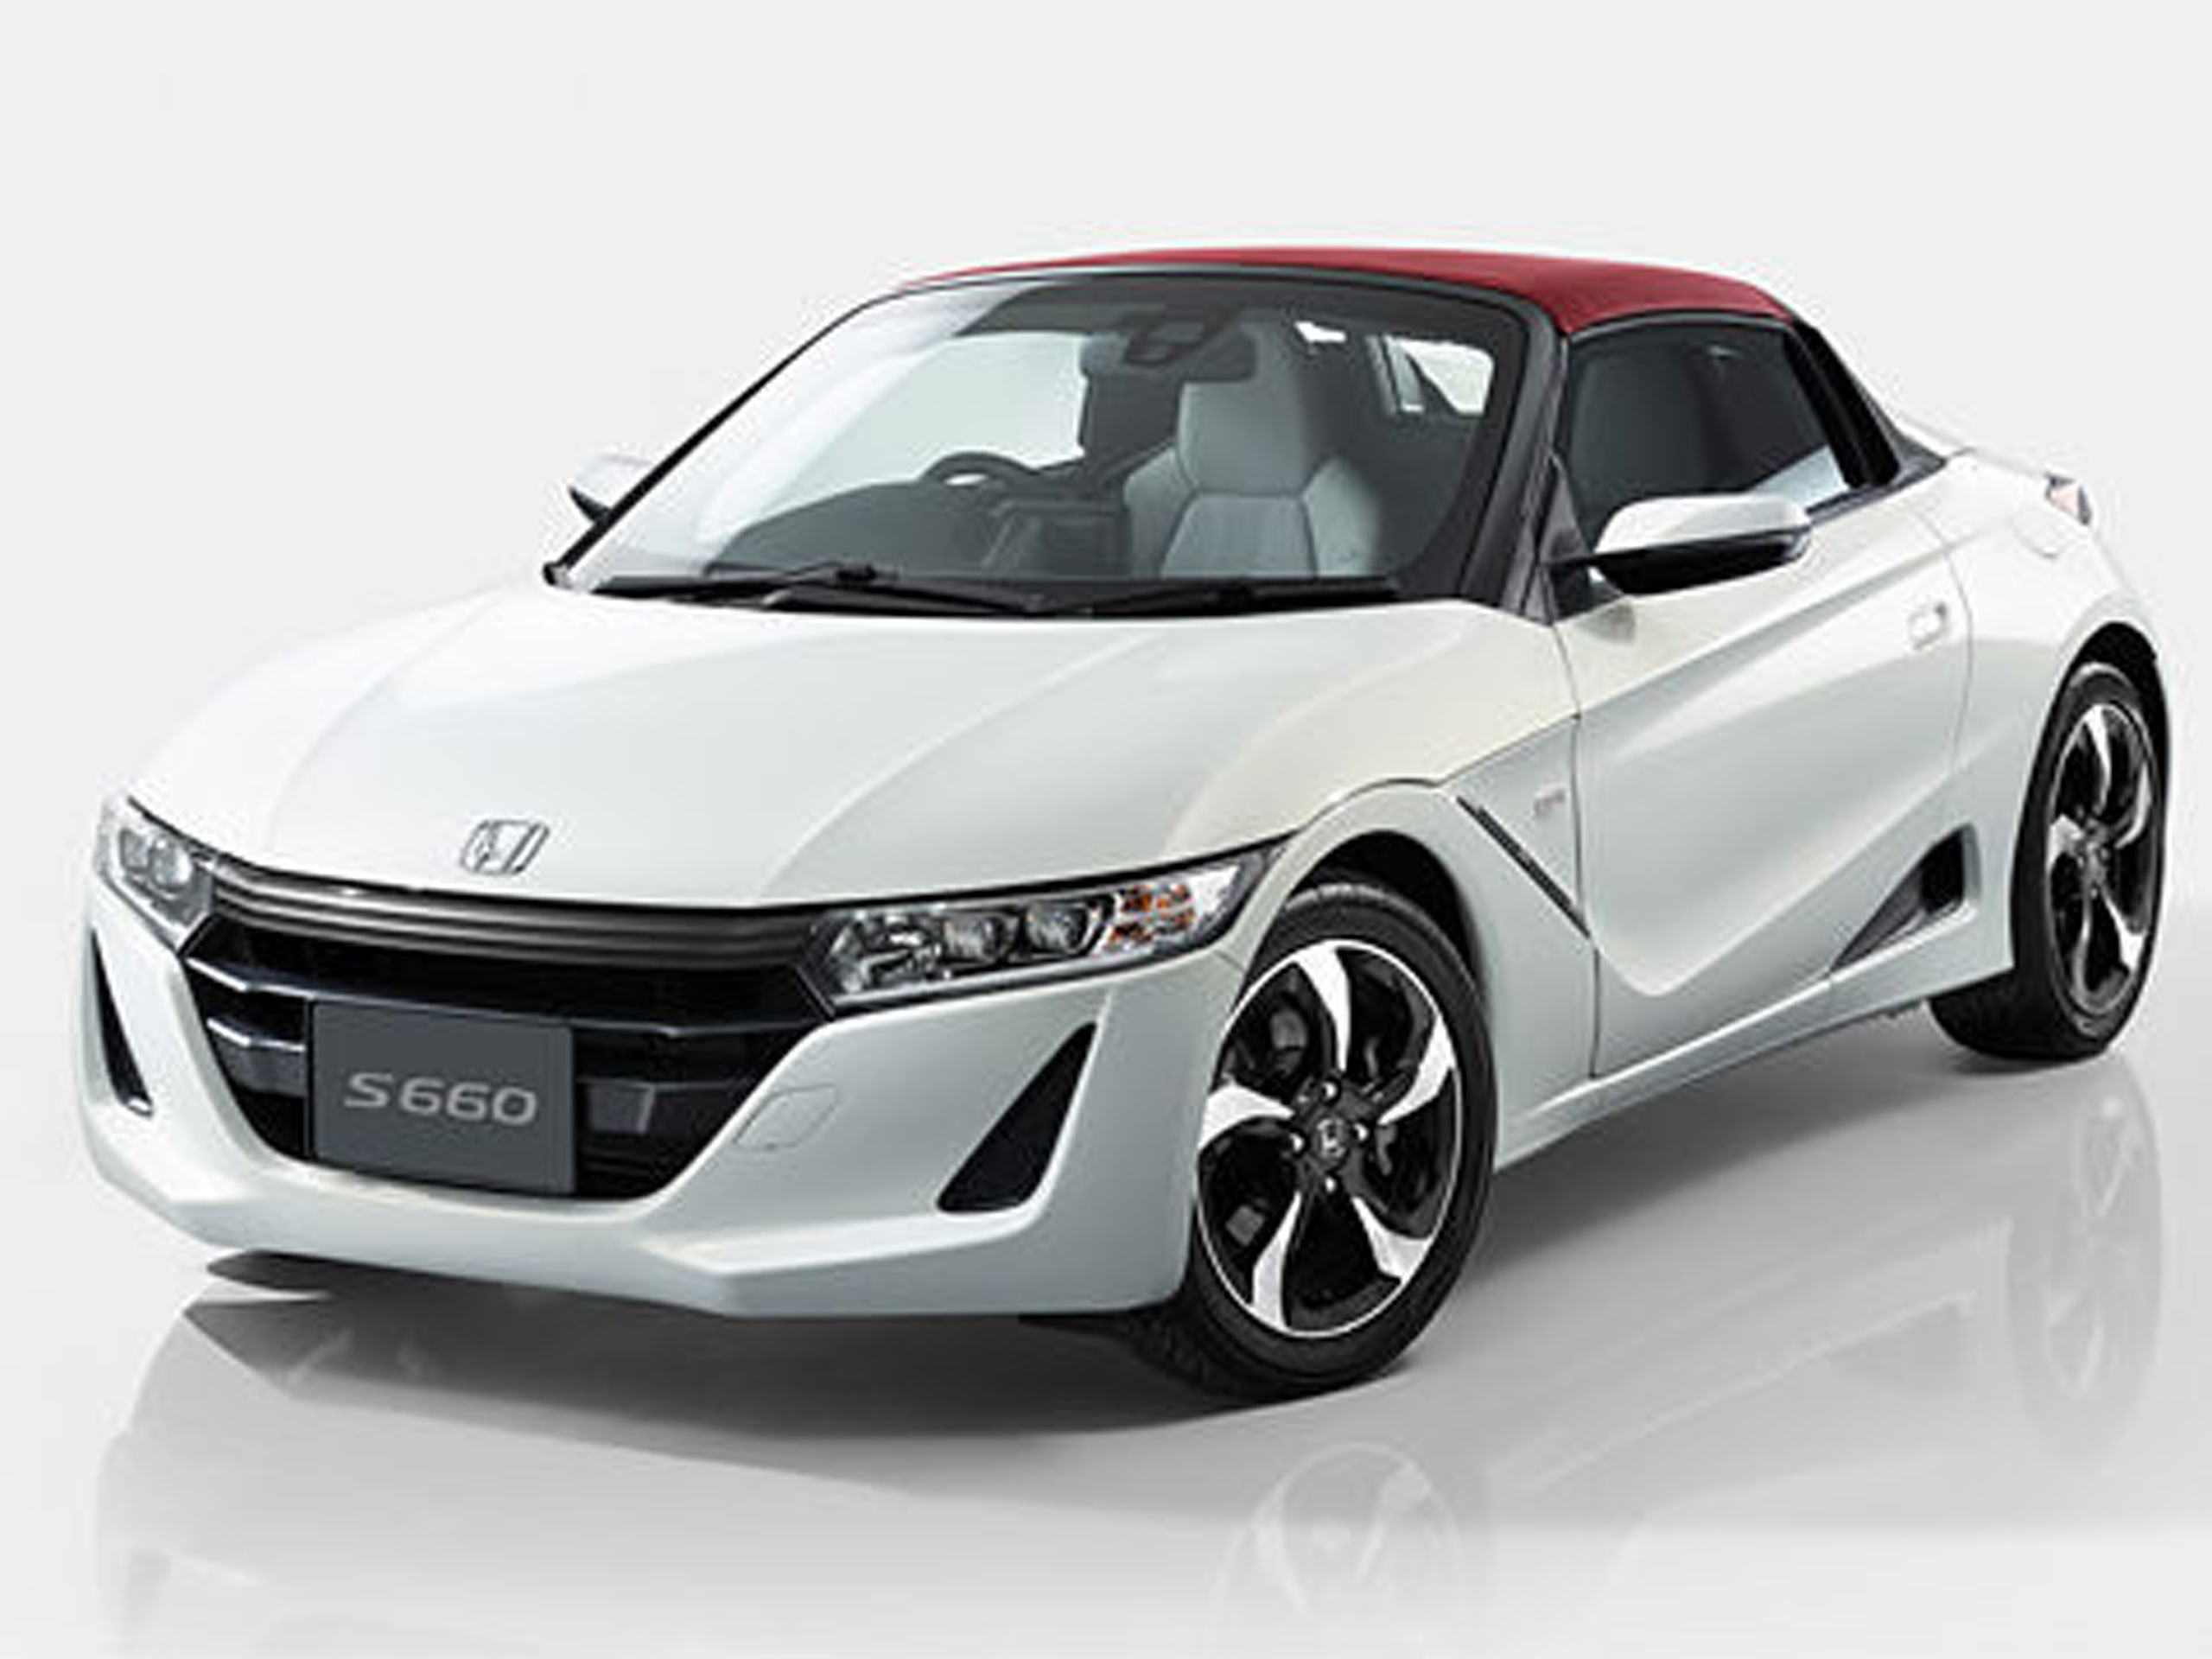 2020 Honda S660 Photos